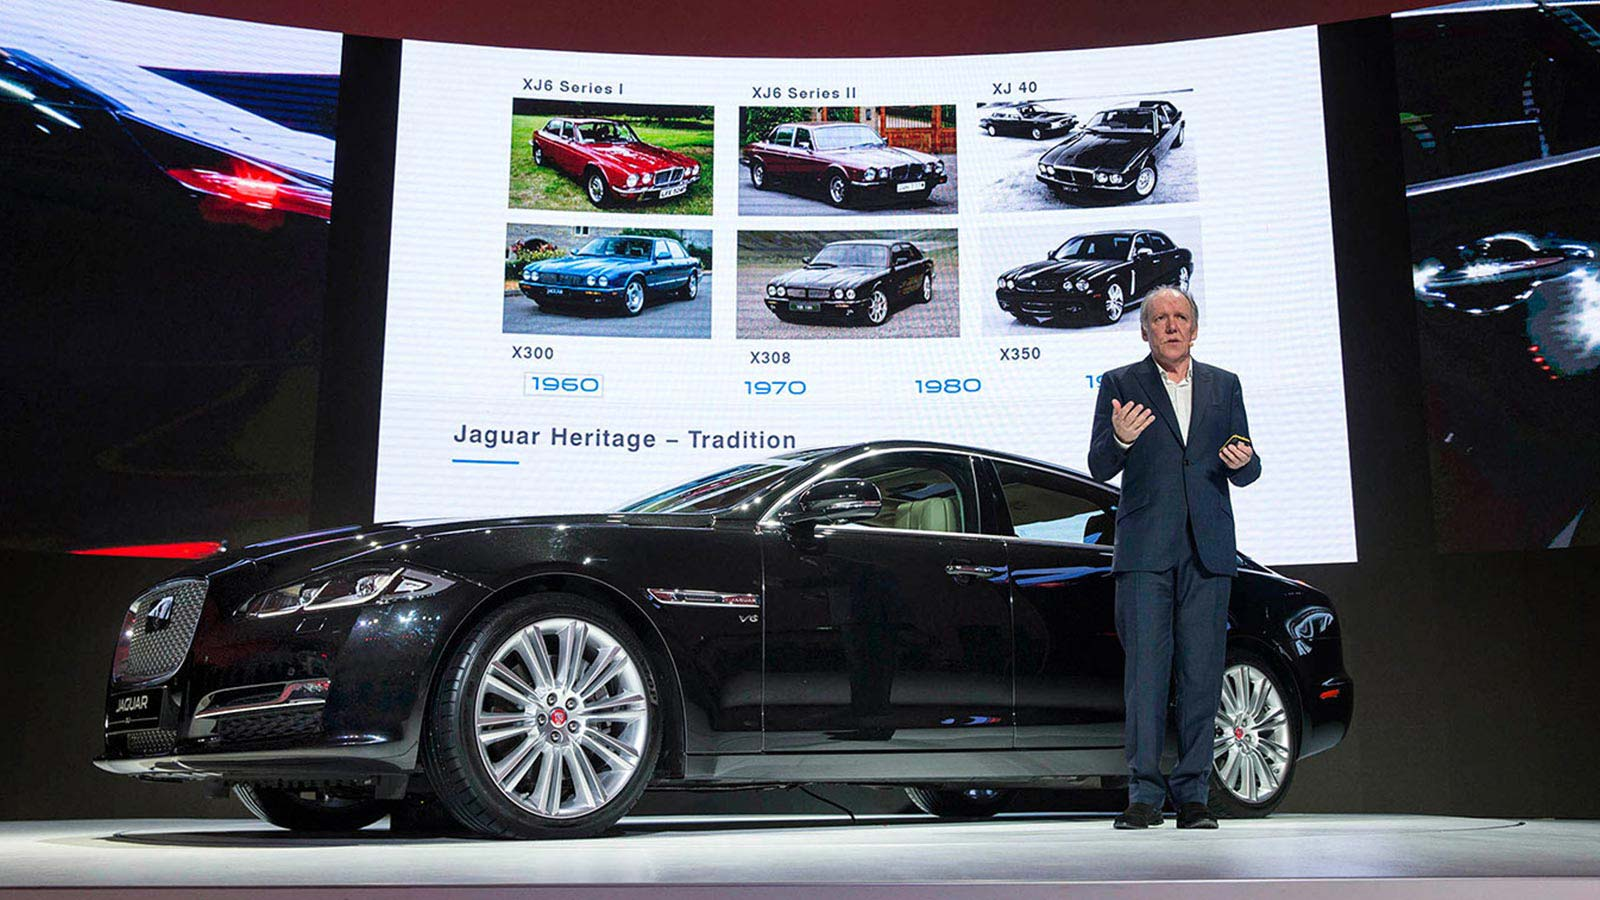 Director of Design, Ian Callum, talking about Jaguar Heritage whilst being stood next to a Jaguar XJ in black.